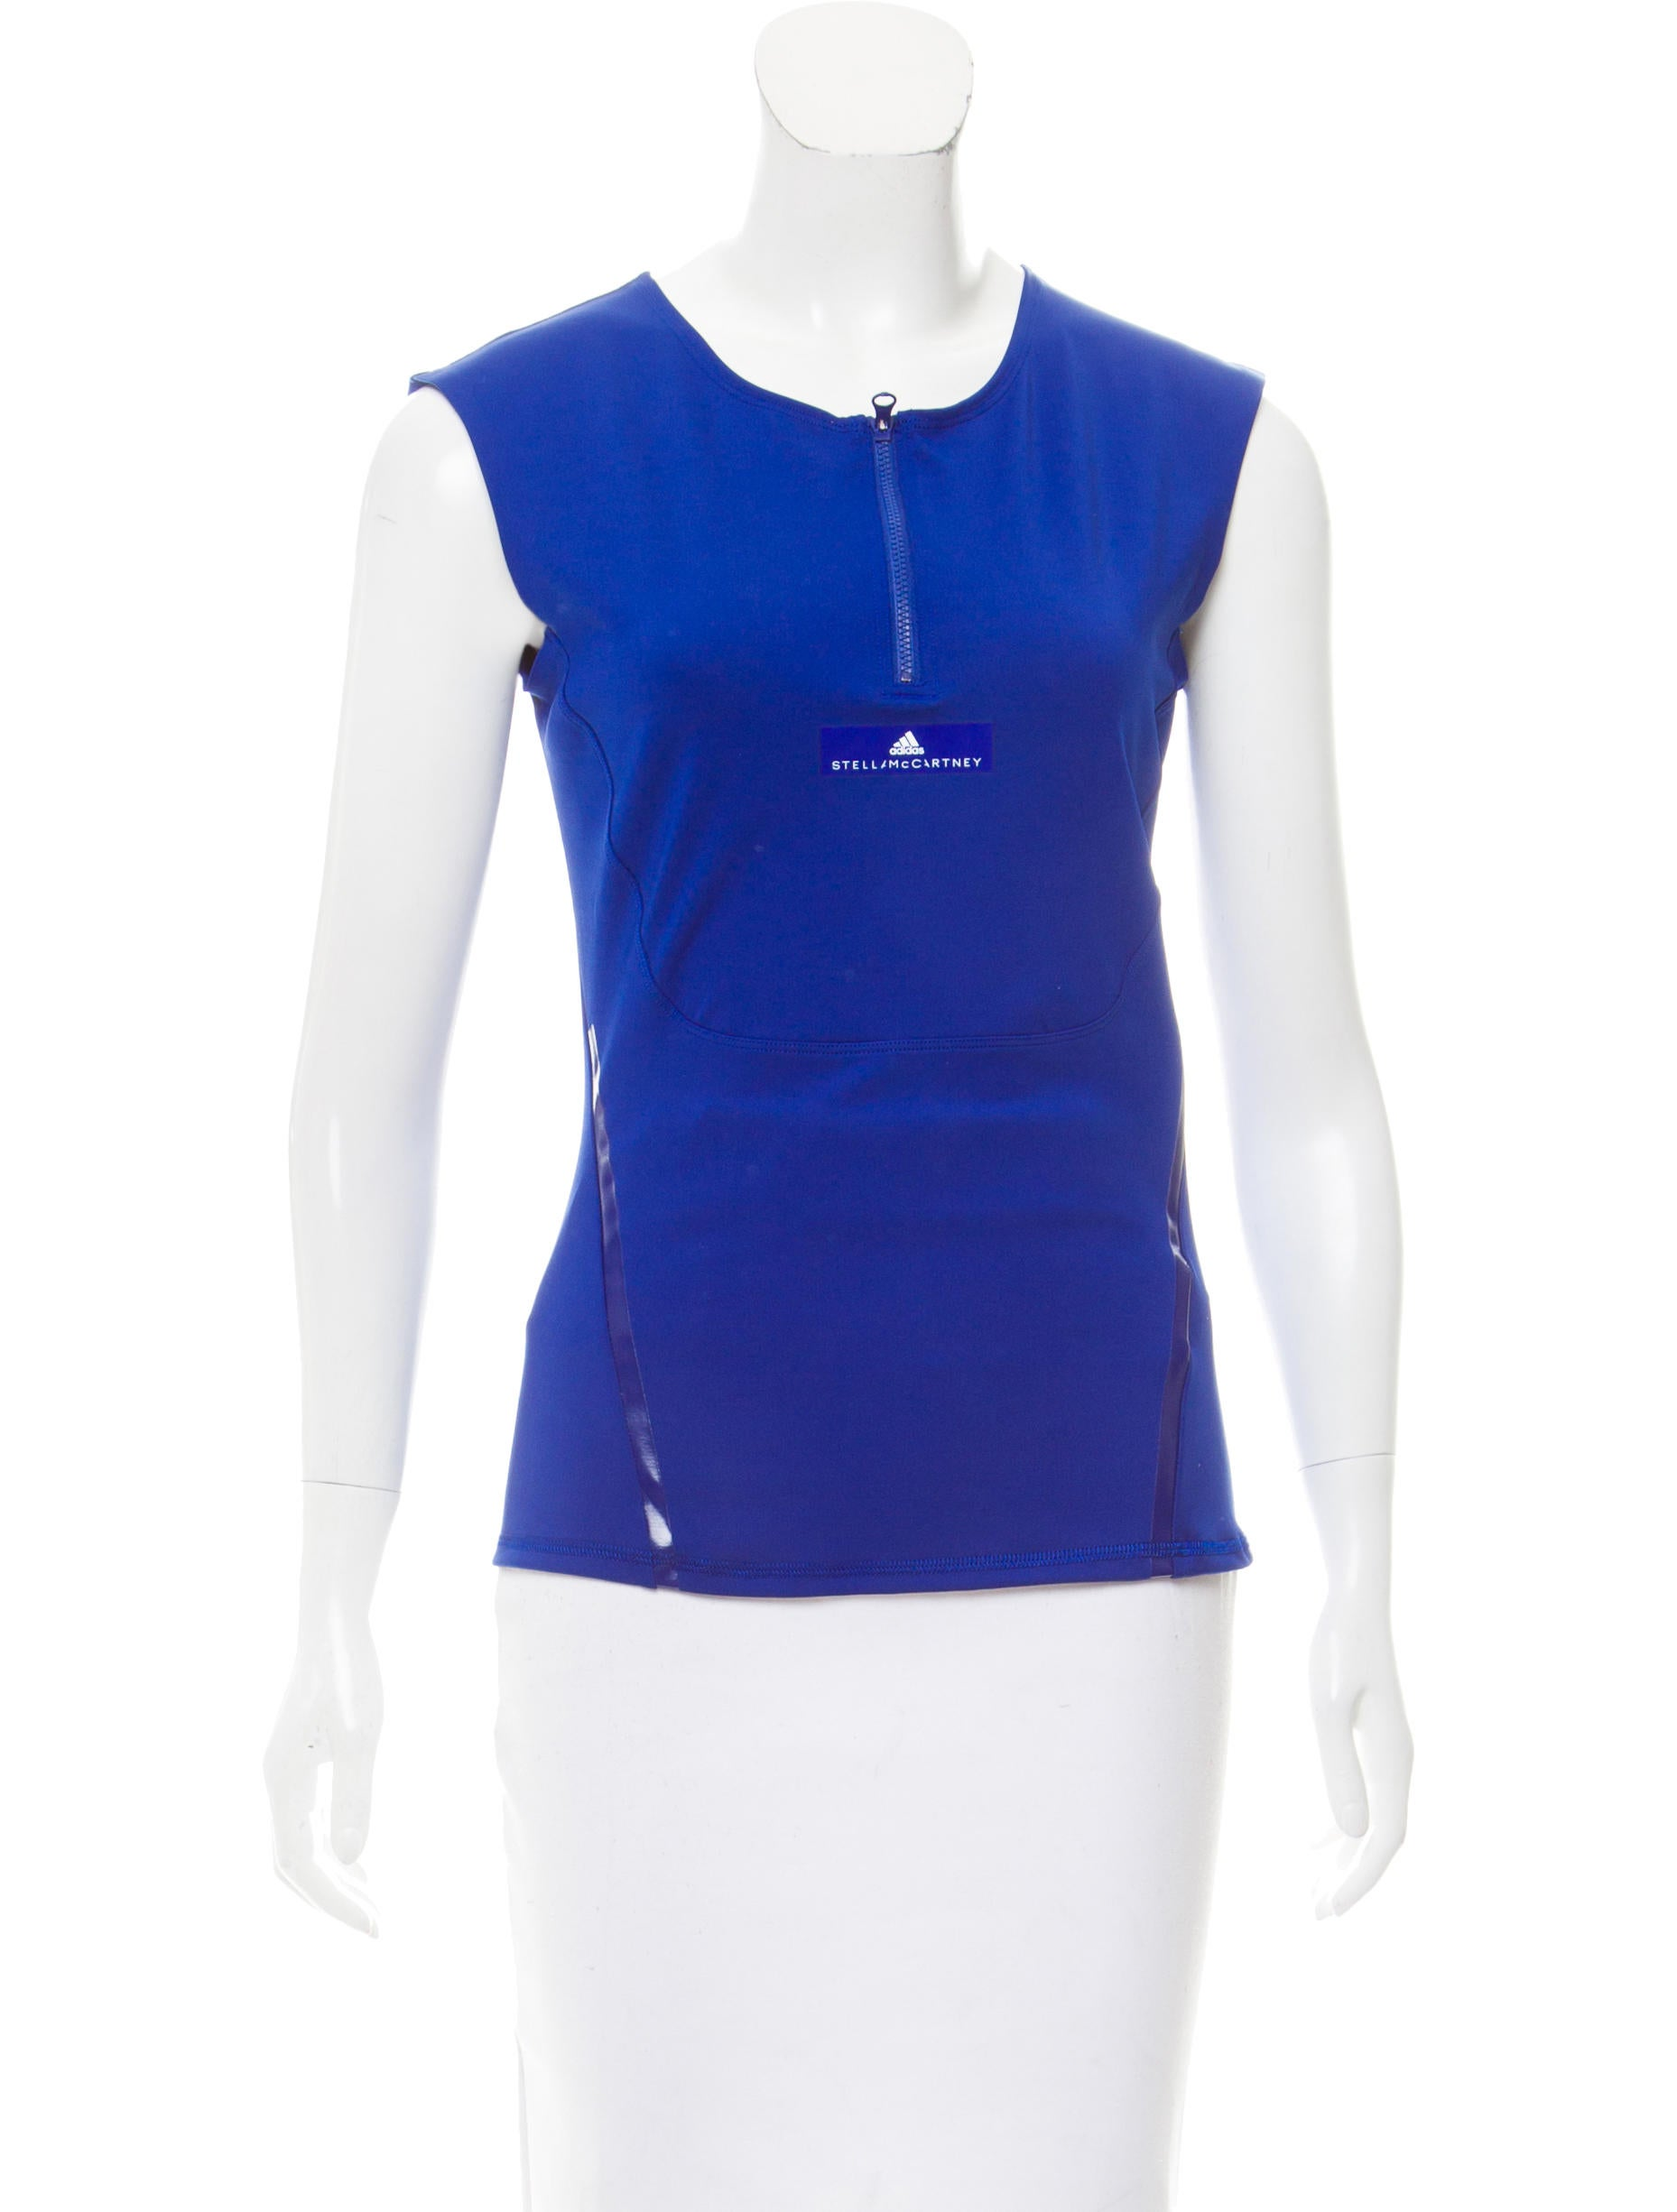 Stella mccartney for adidas sleeveless athletic top w for Best athletic dress shirts